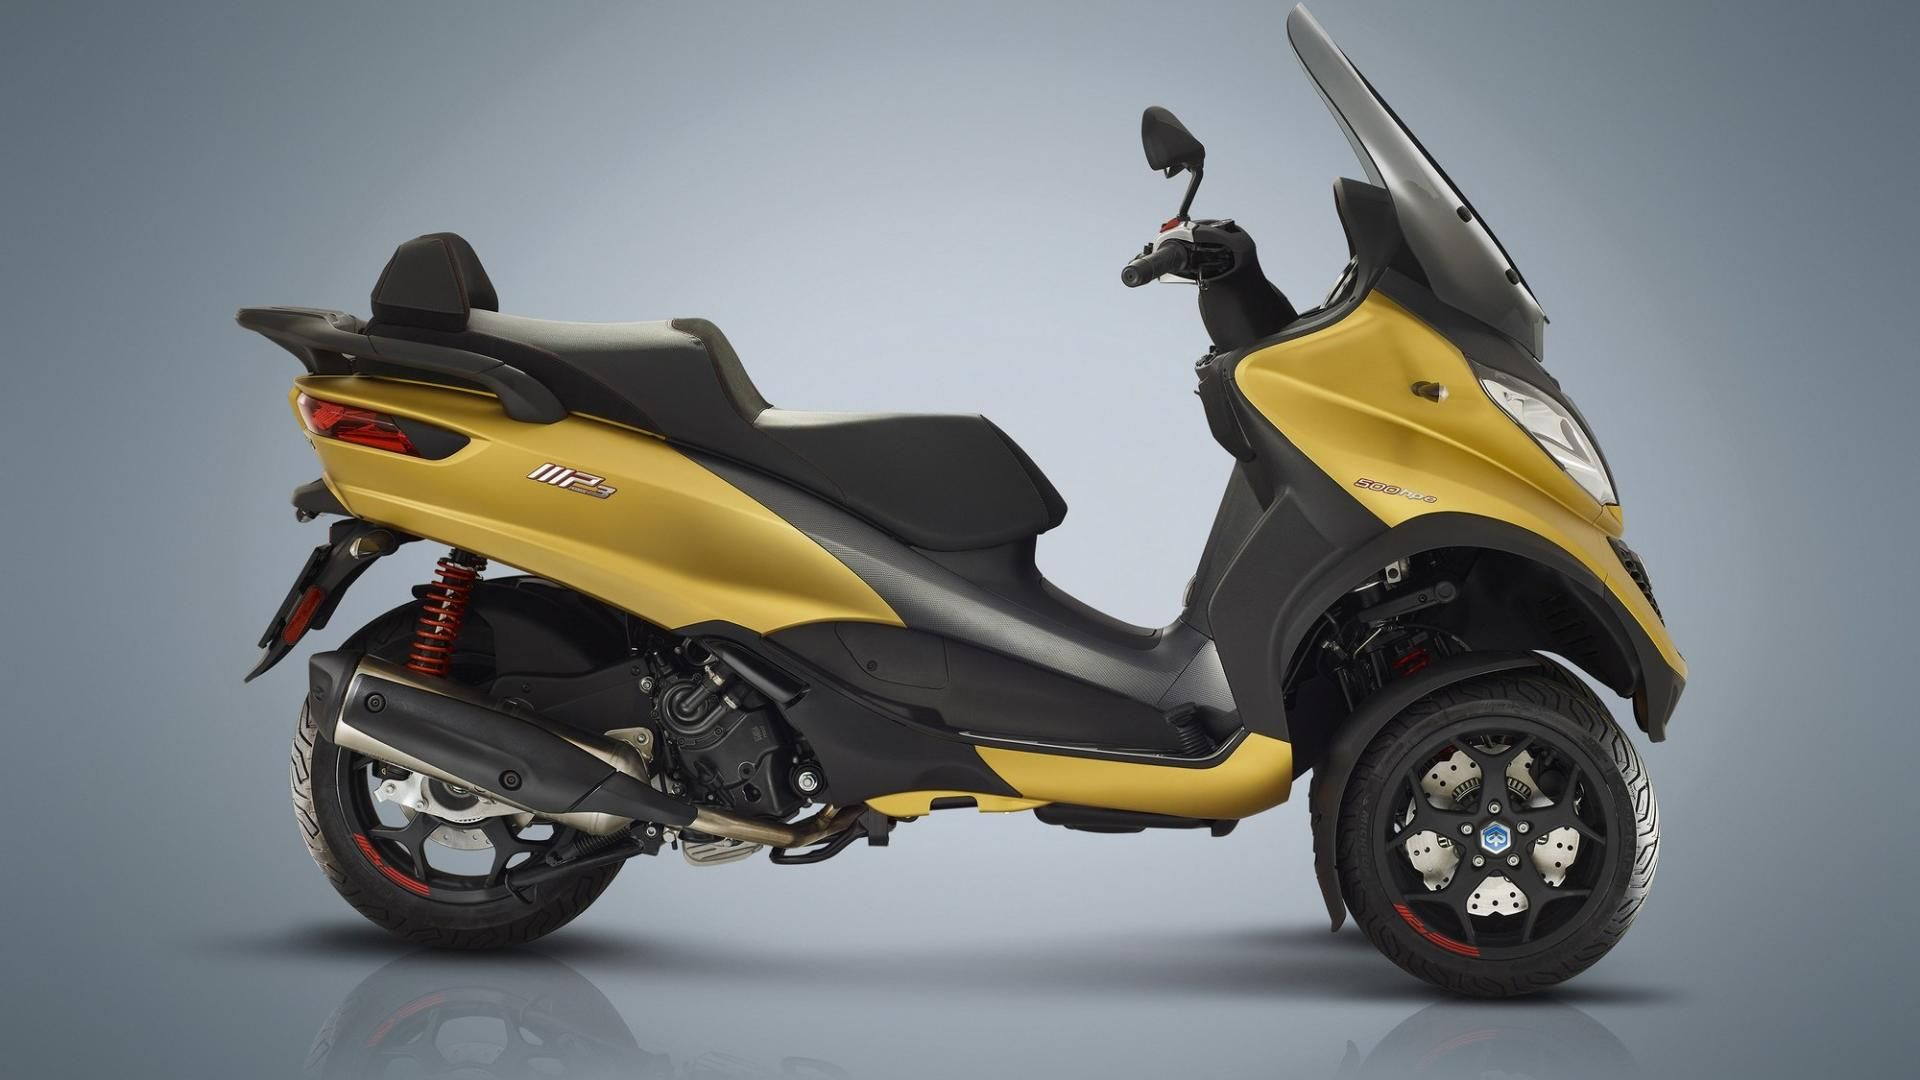 Nuevo Piaggio MP3 500 LT HPE Sport Advanced con marcha atrás